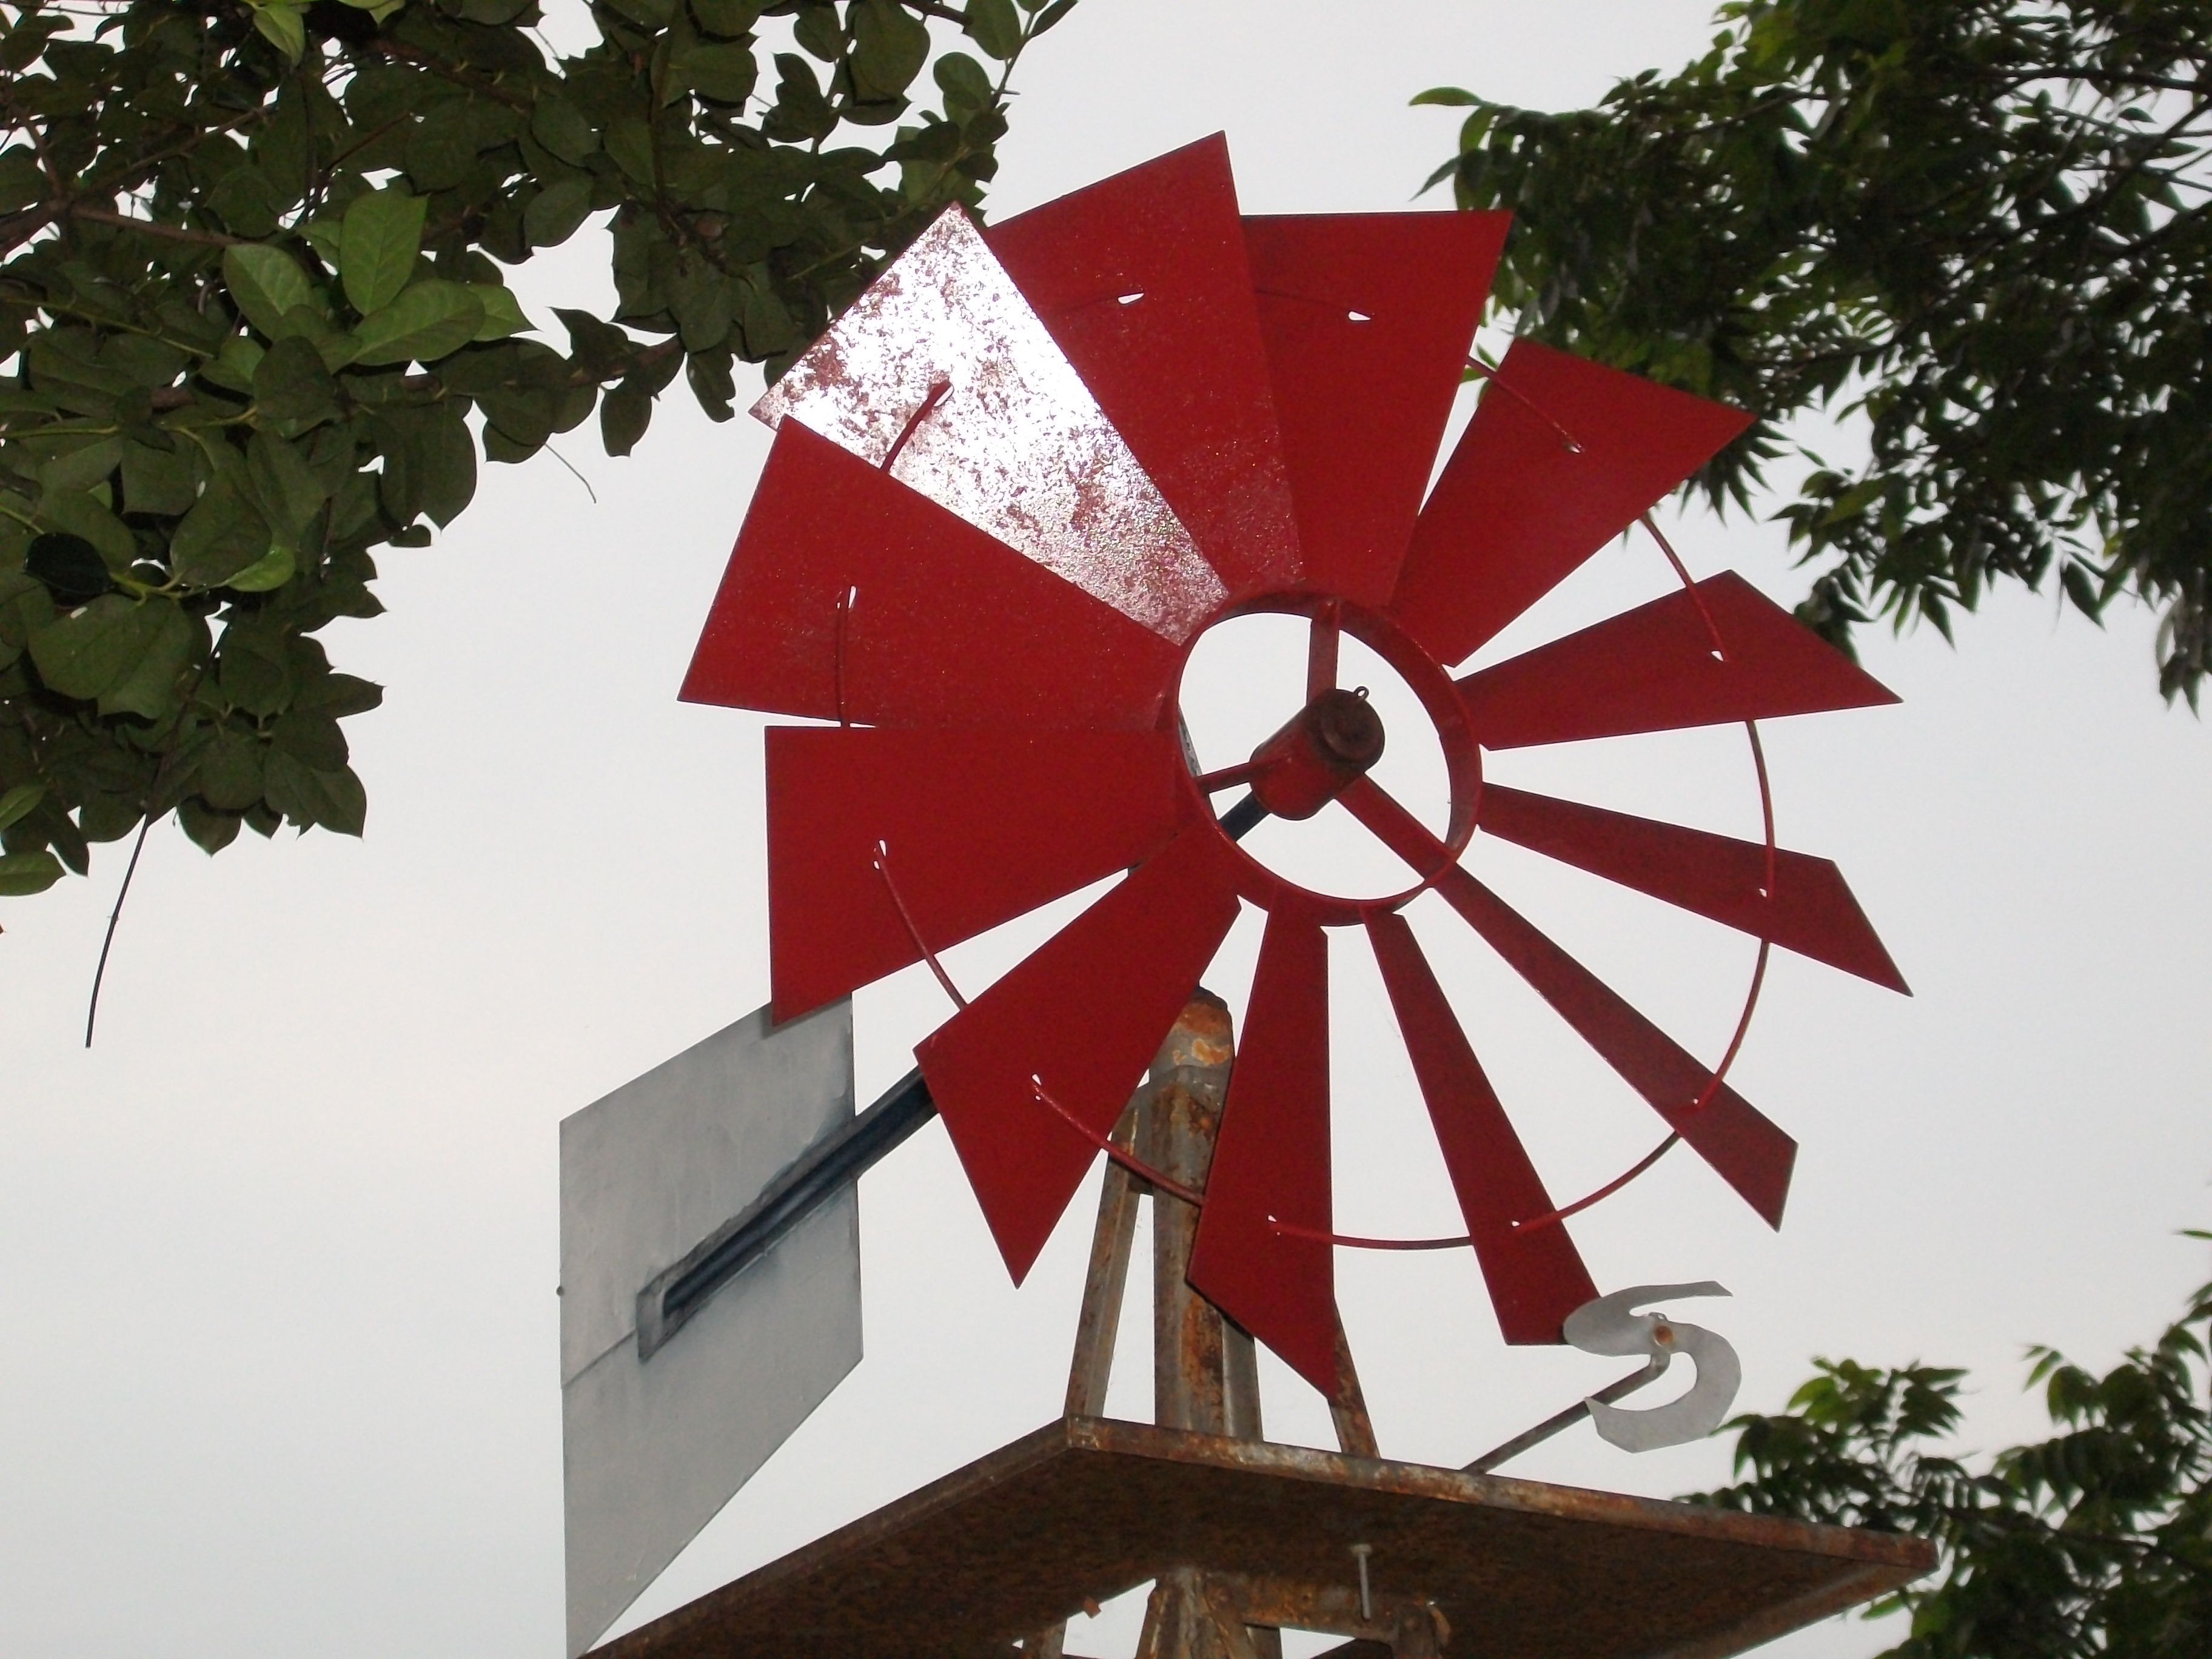 Grandpa S Windmill Weathervane Windmill Pictures Fair Grounds